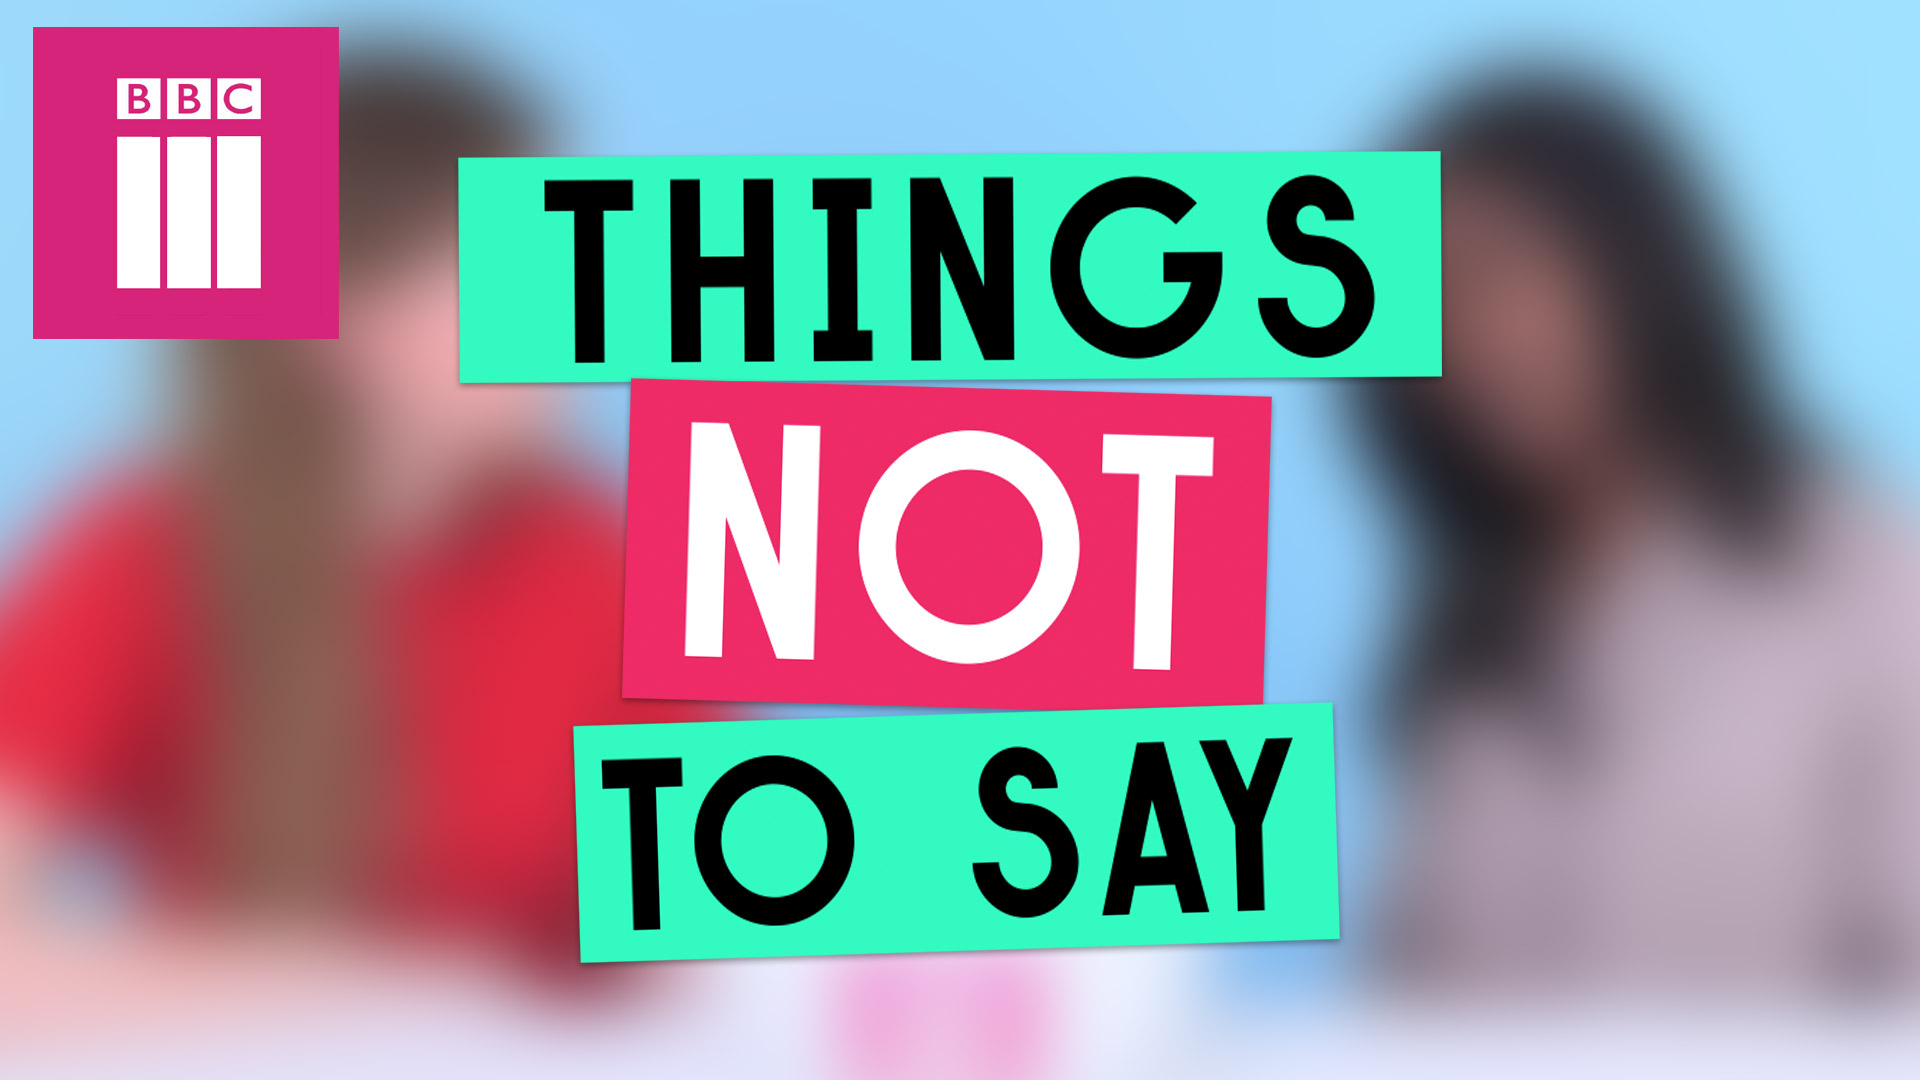 Things Not to Say for BBC3